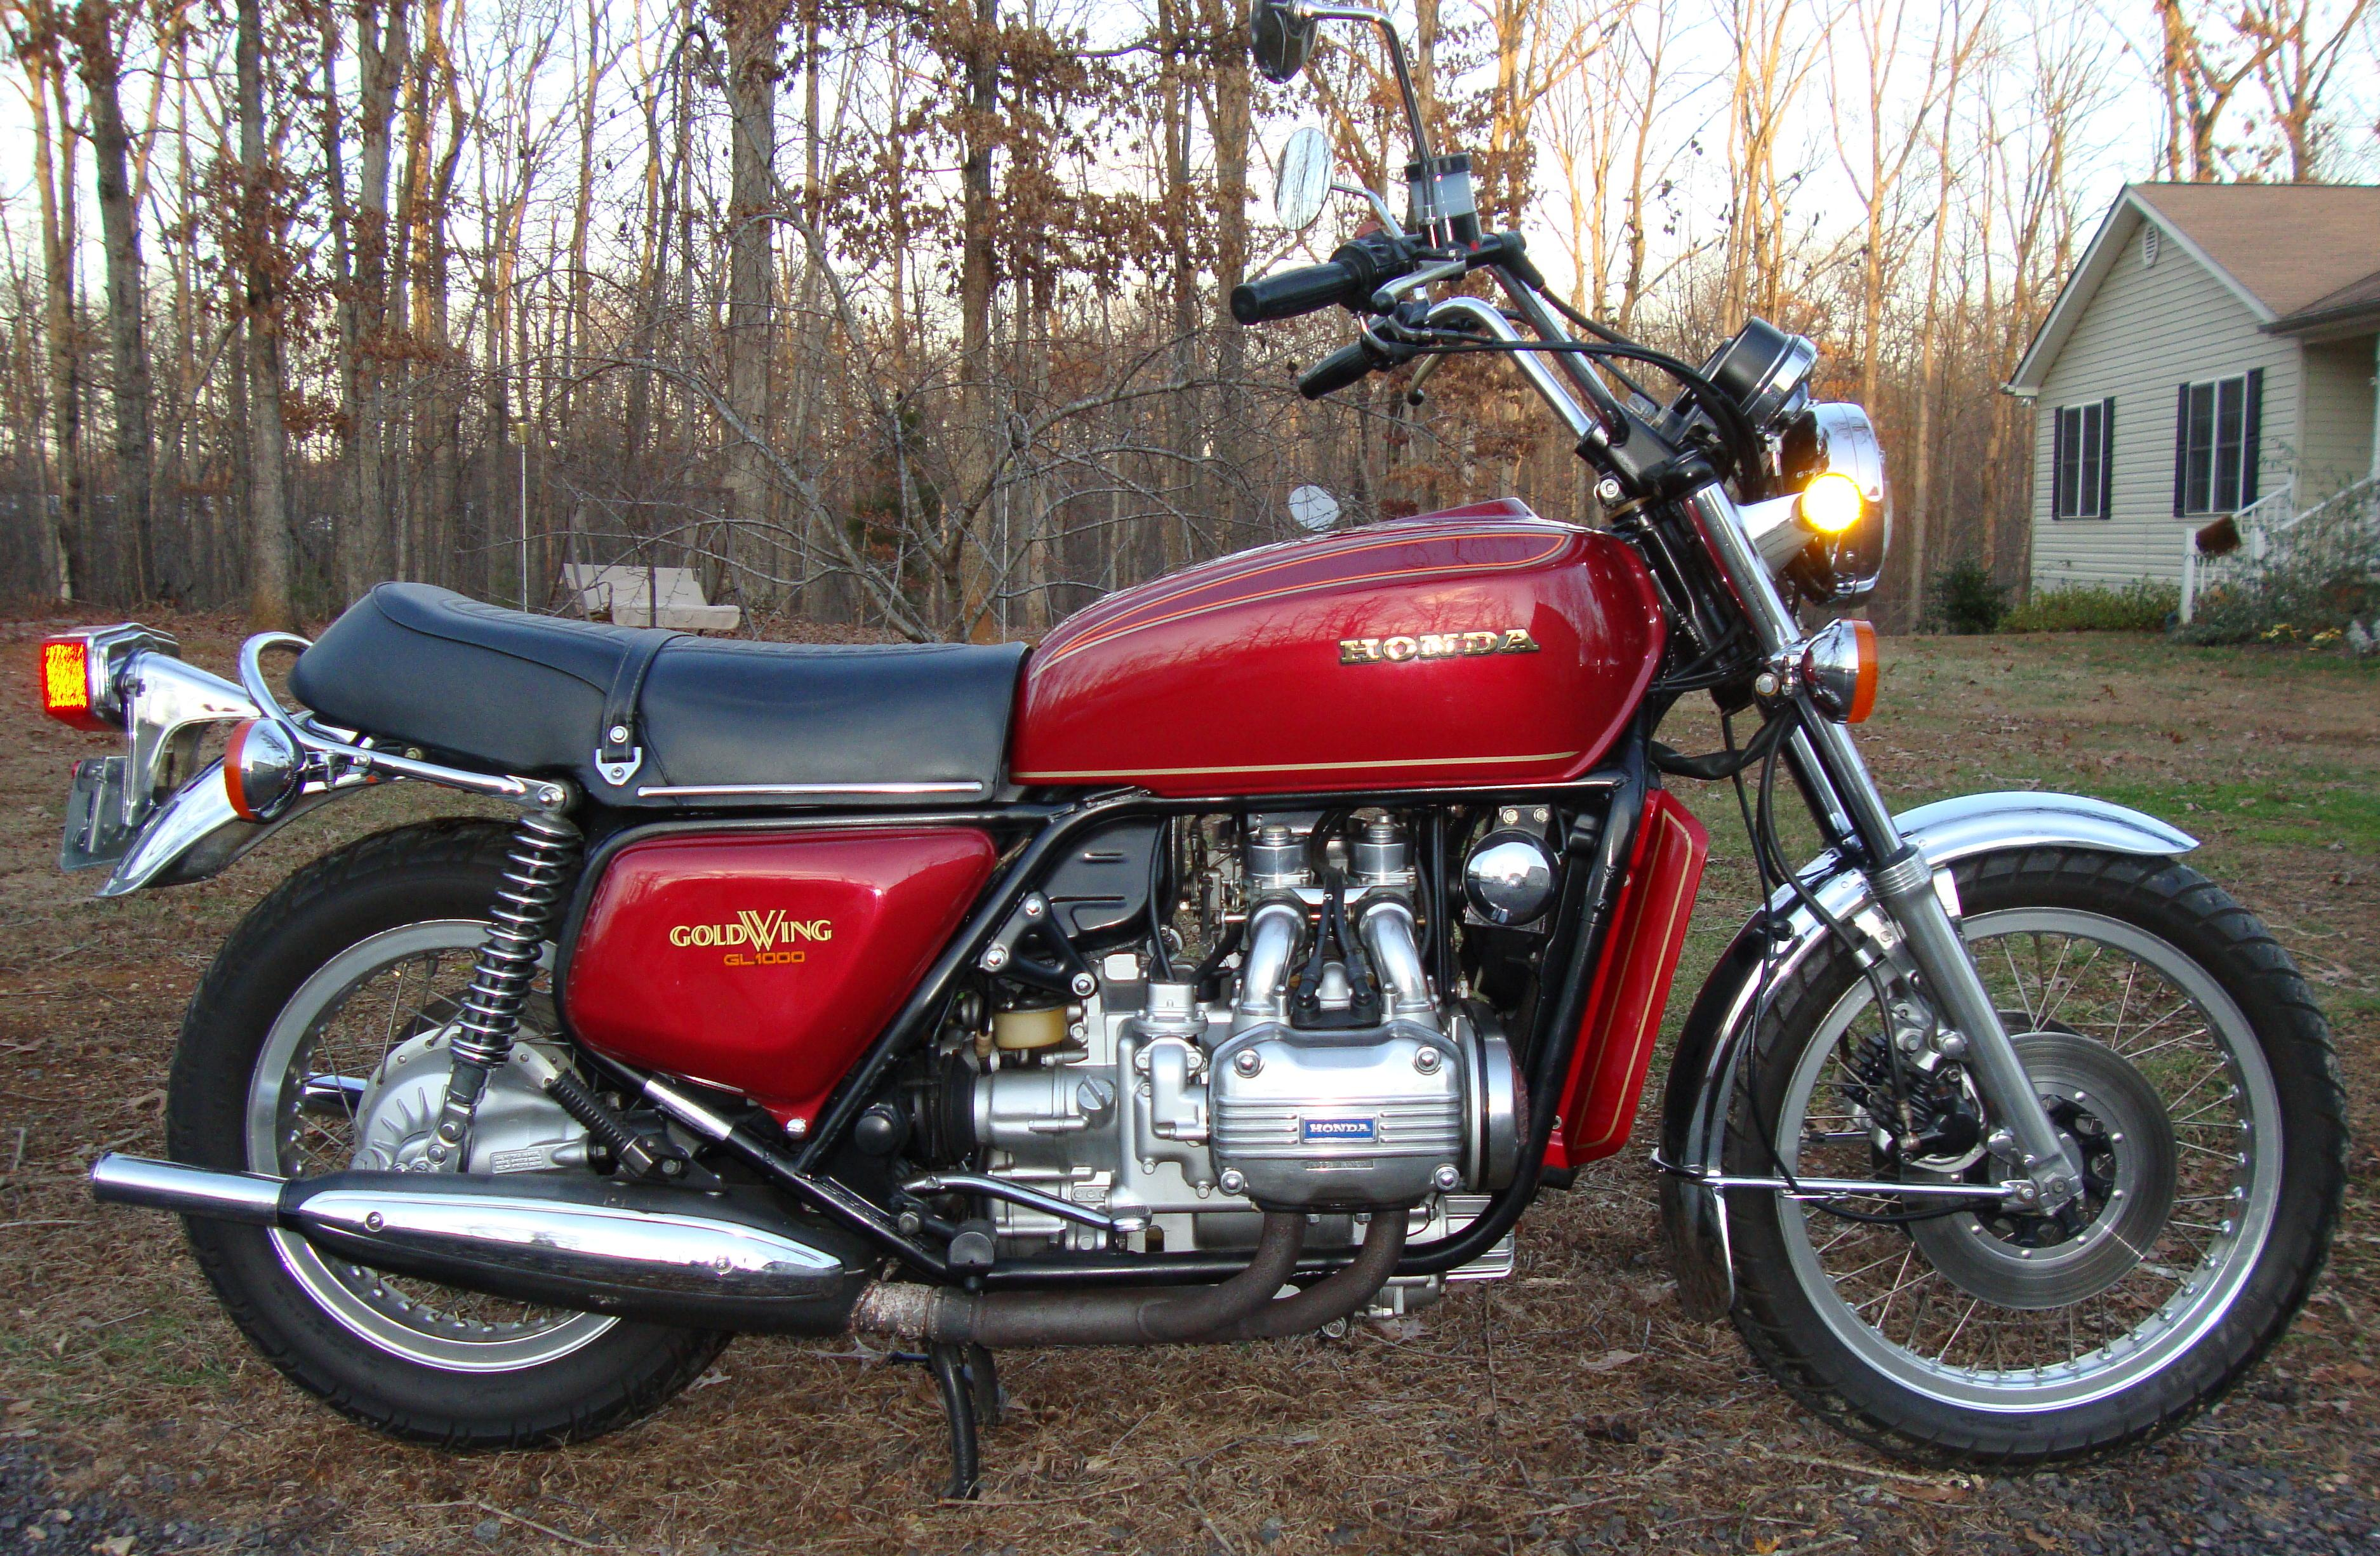 new honda gold wing gl1100 wiring diagram electrical randy's cycle service & restoration: 1975 honda gl1000 ... 1975 gi1000 gold wing wiering